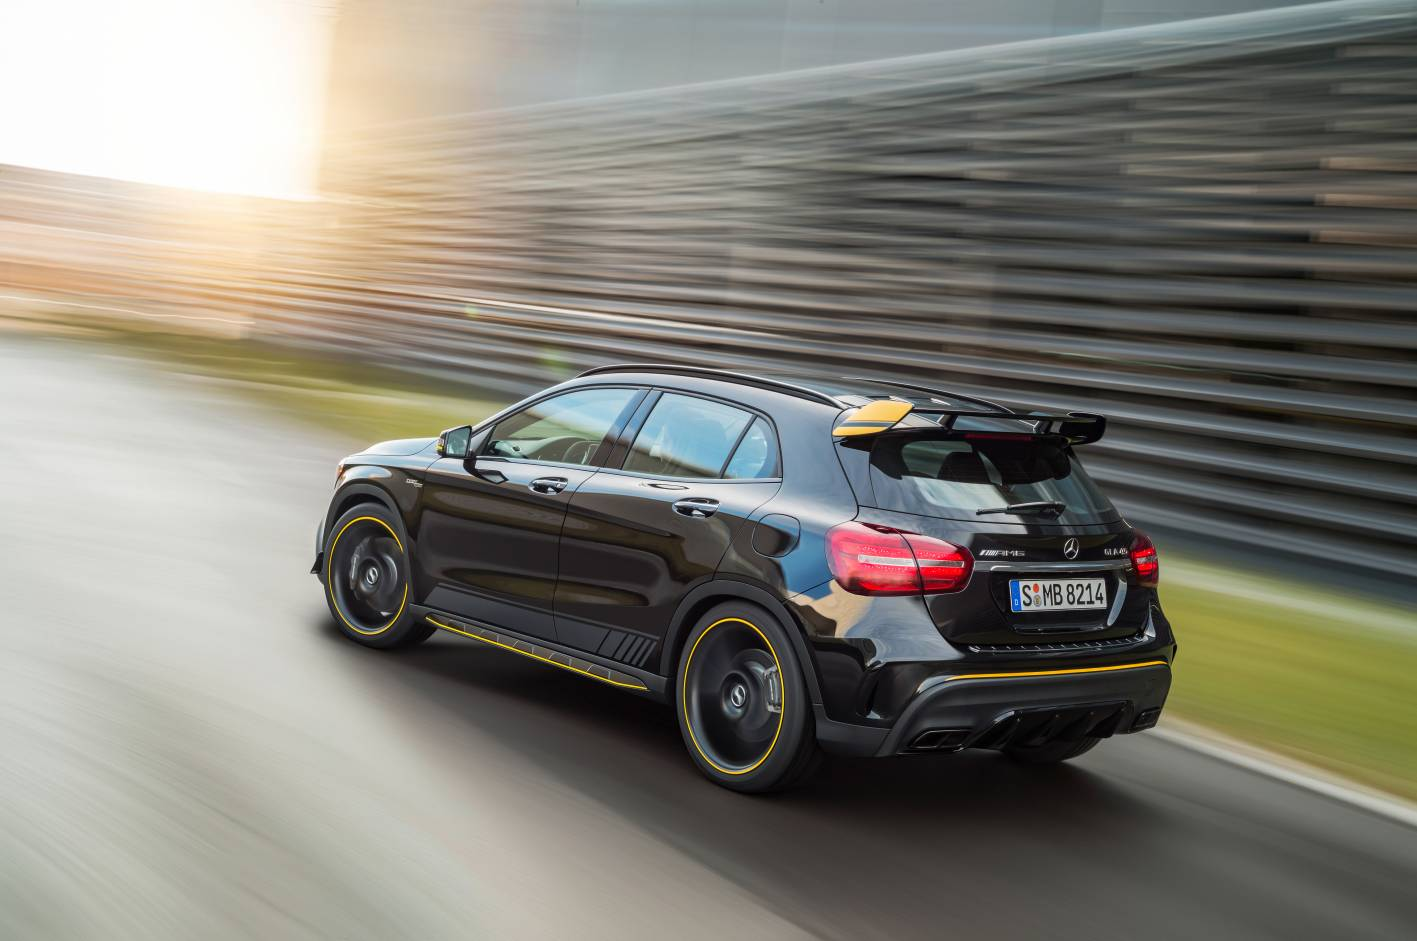 Revised Styling And Specification For 2018 Mercedes Benz Gla Range